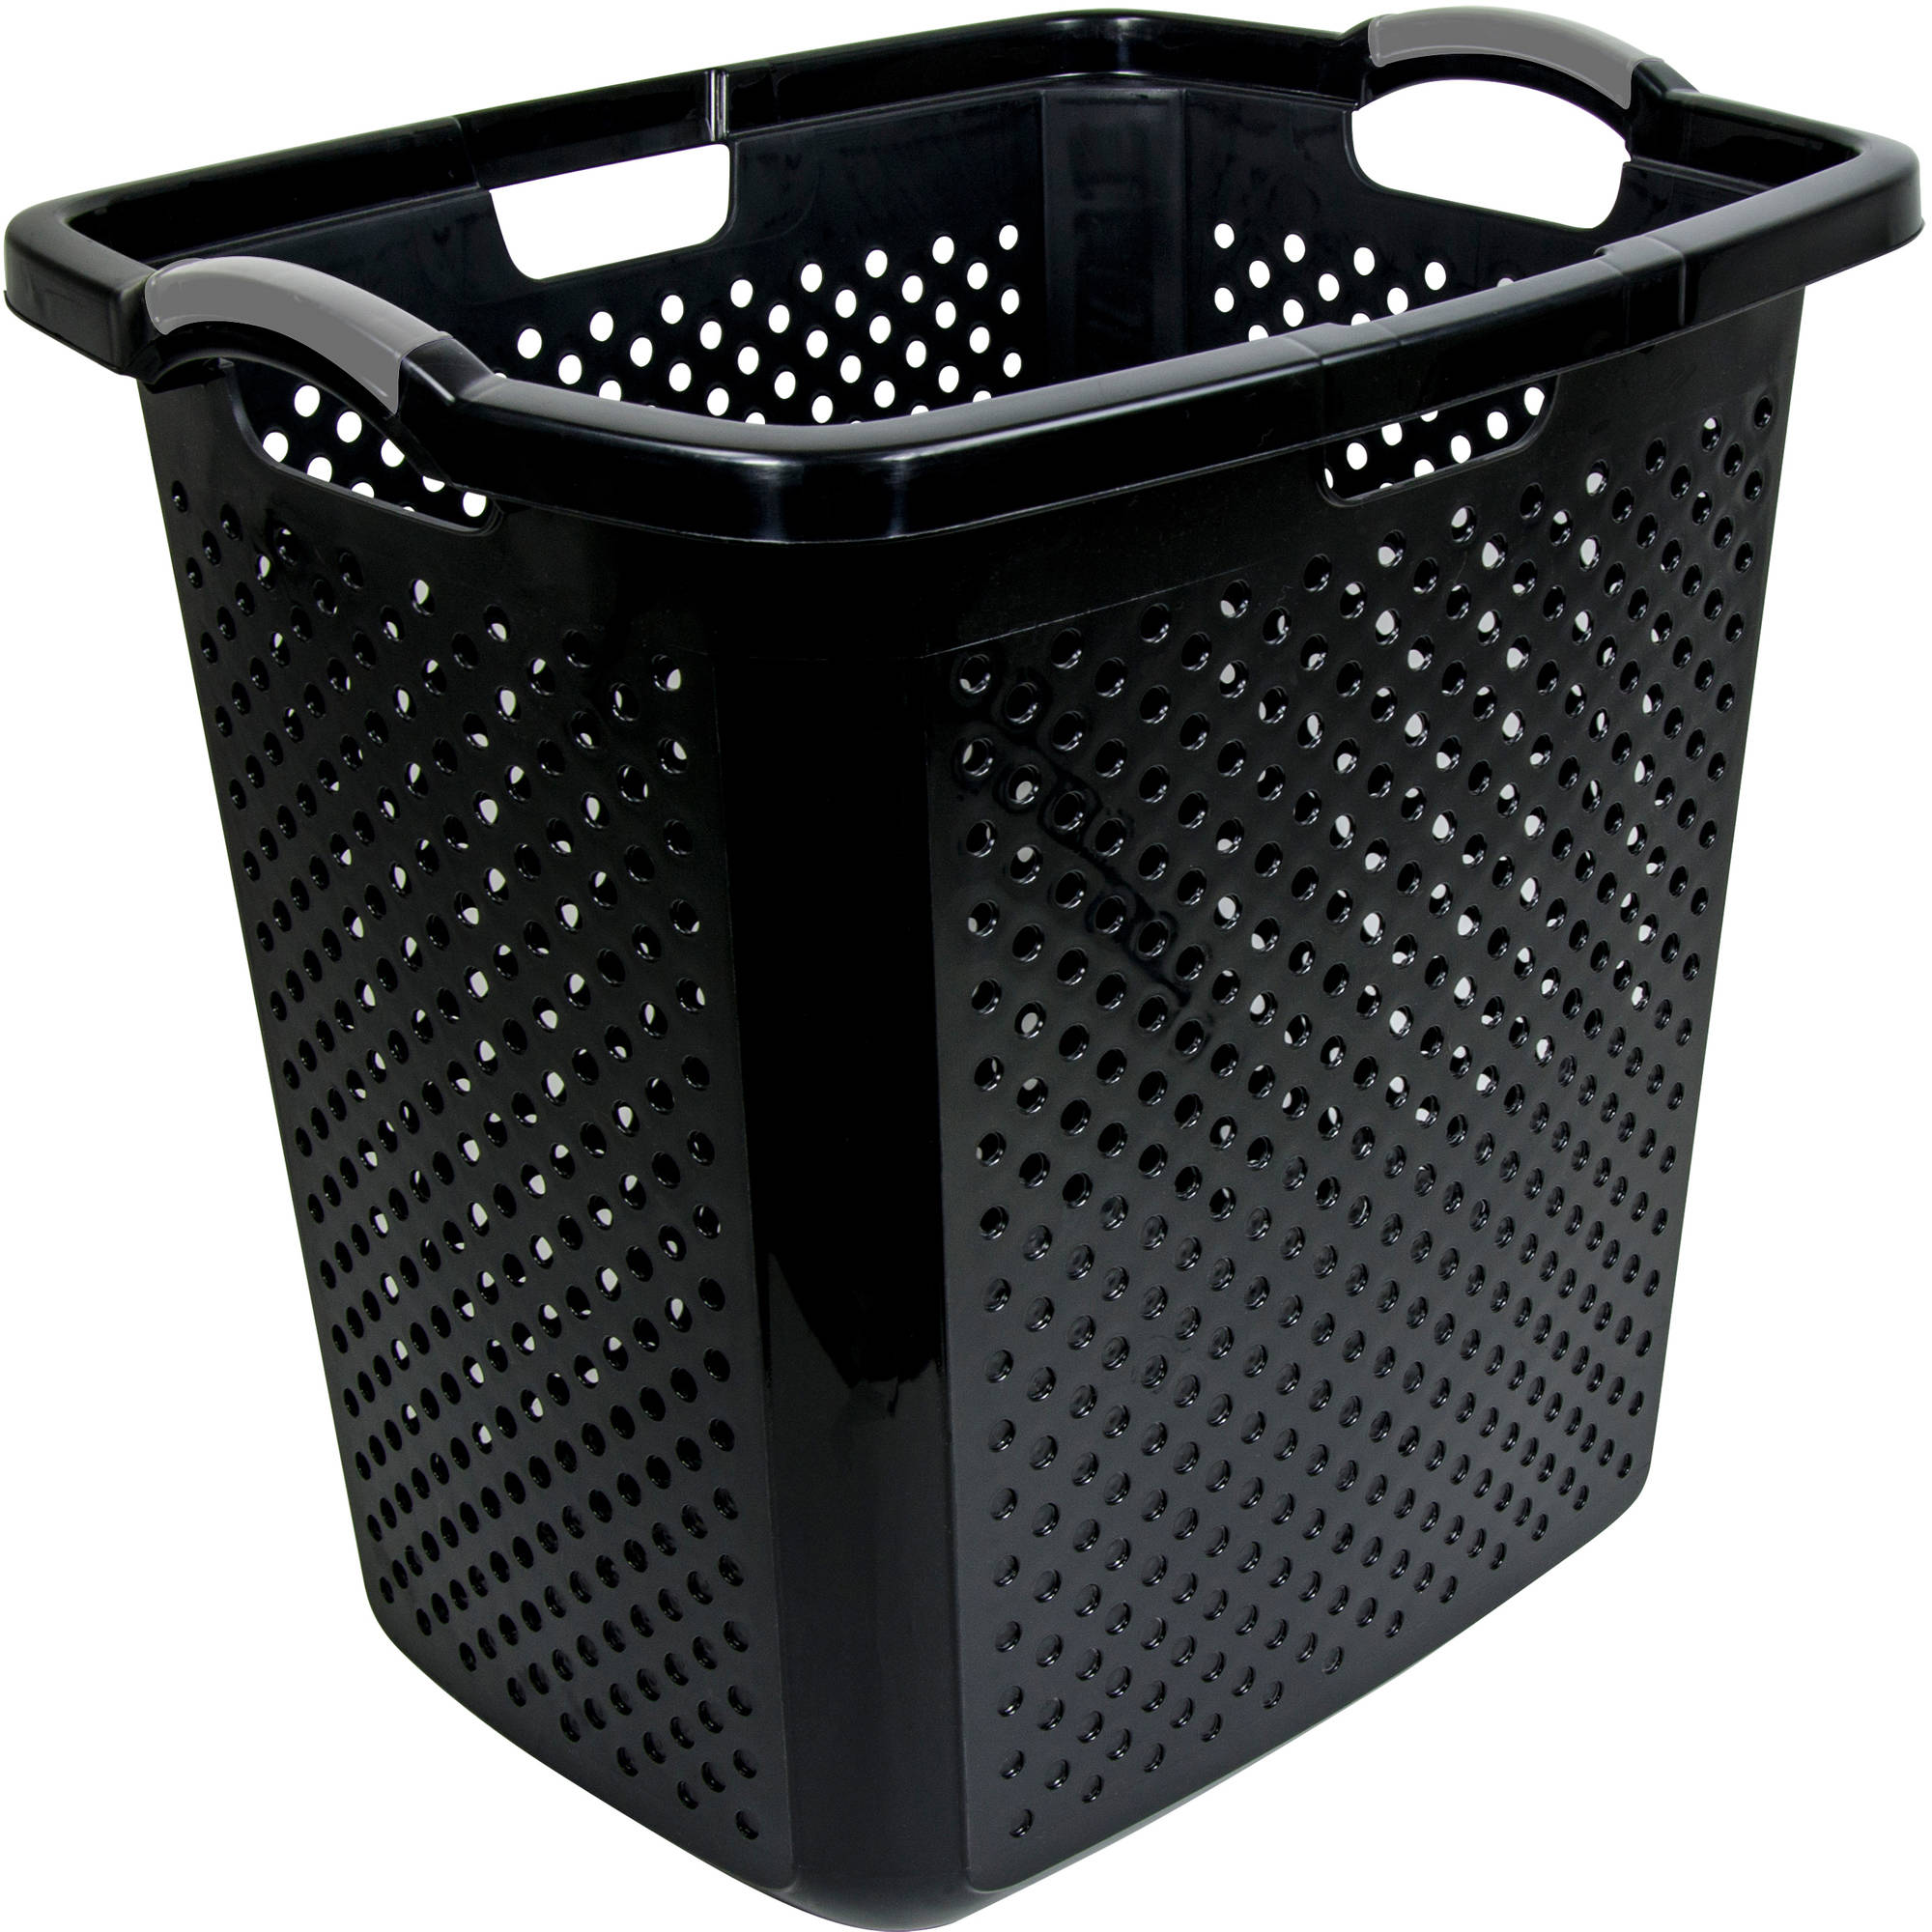 With our handcrafted hampers, your dirty laundry goes incognito in even the most public areas of your home. These multi-use wicker laundry hampers hold plenty of clothes until wash day. Or, fill them with your extra linens, toys or other home goods for convenient storage.